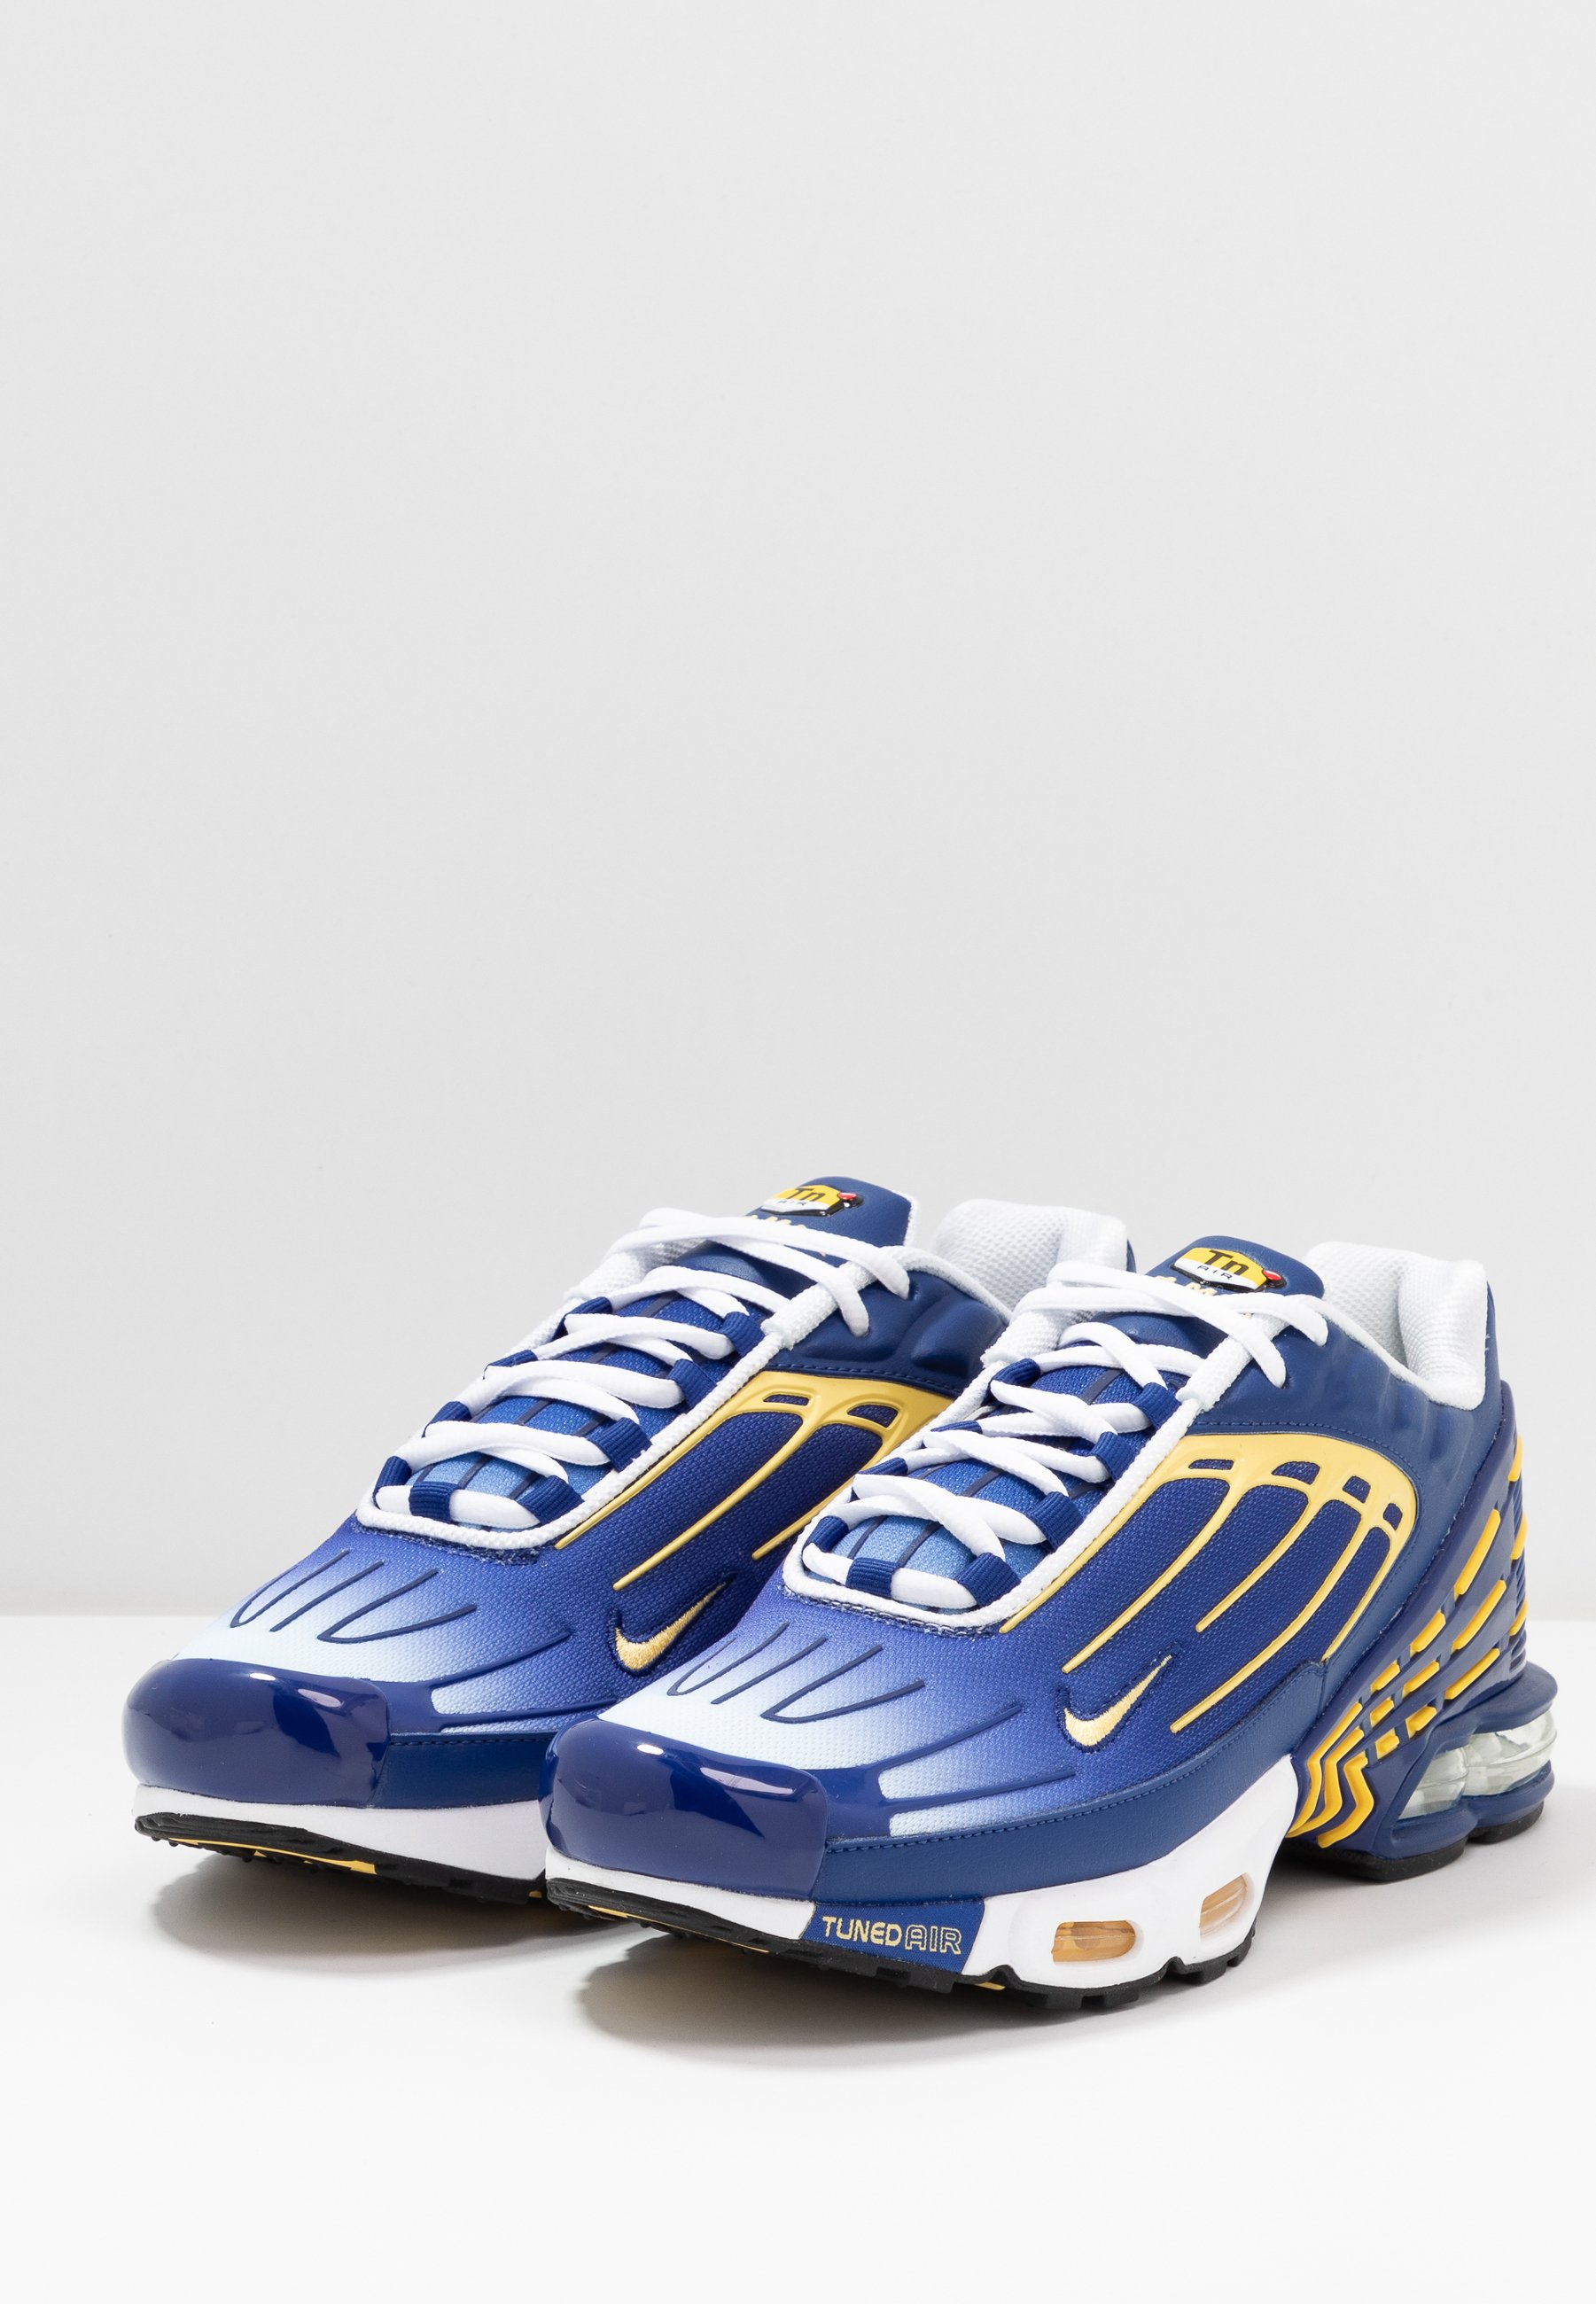 Nike Air Max Plus Tn Tuned OG Hyper Blue Black Yellow White